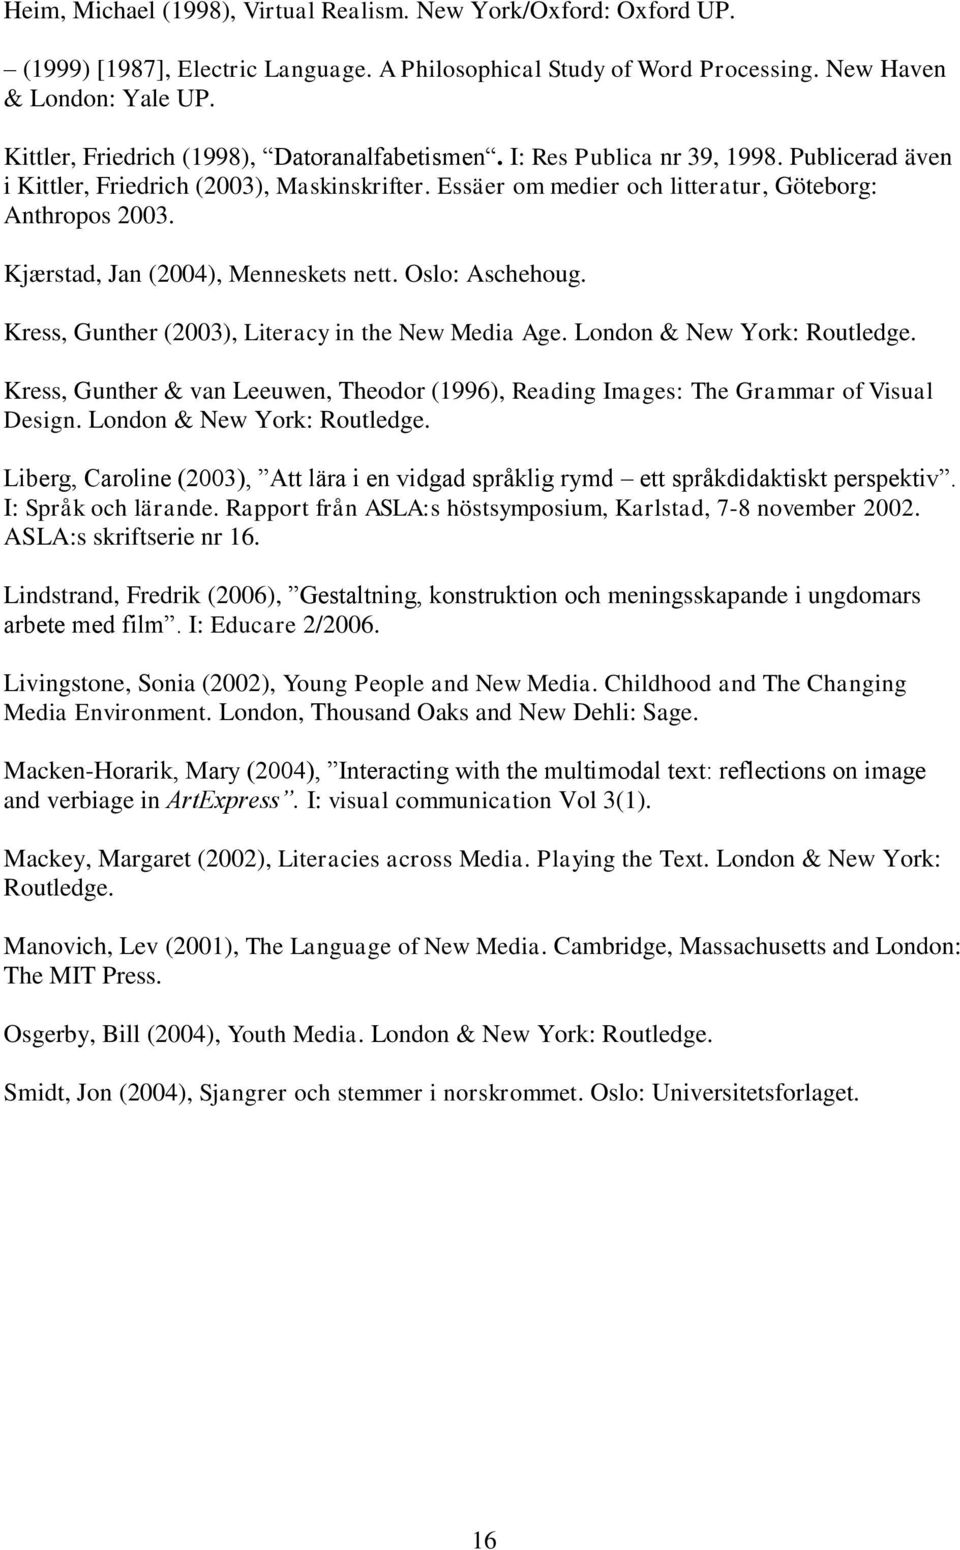 Kjærstad, Jan (2004), Menneskets nett. Oslo: Aschehoug. Kress, Gunther (2003), Literacy in the New Media Age. London & New York: Routledge.